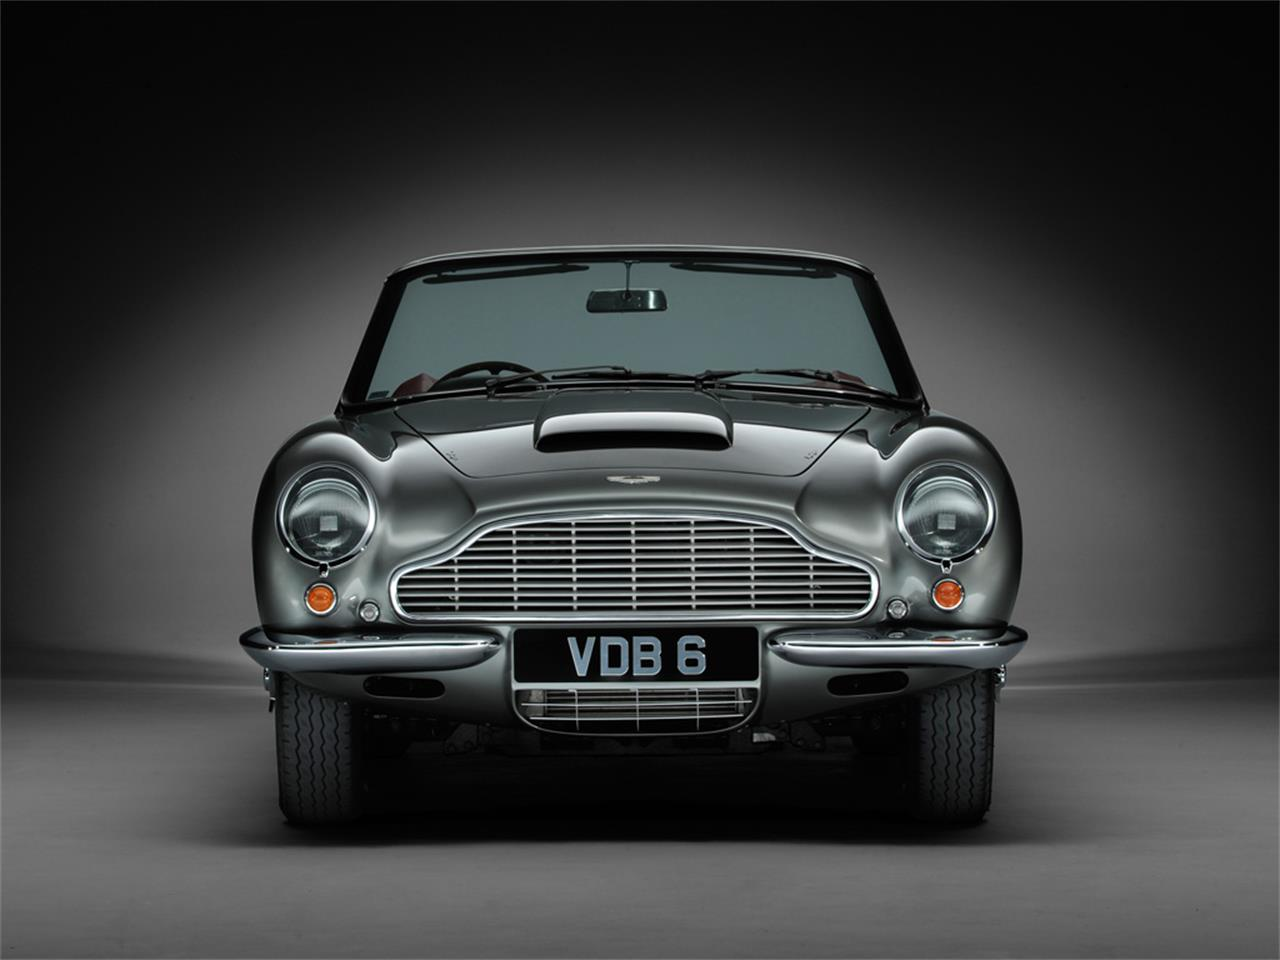 Large Picture of Classic '67 Aston Martin DB6 MKI Vantage Volante located in  - IVCB